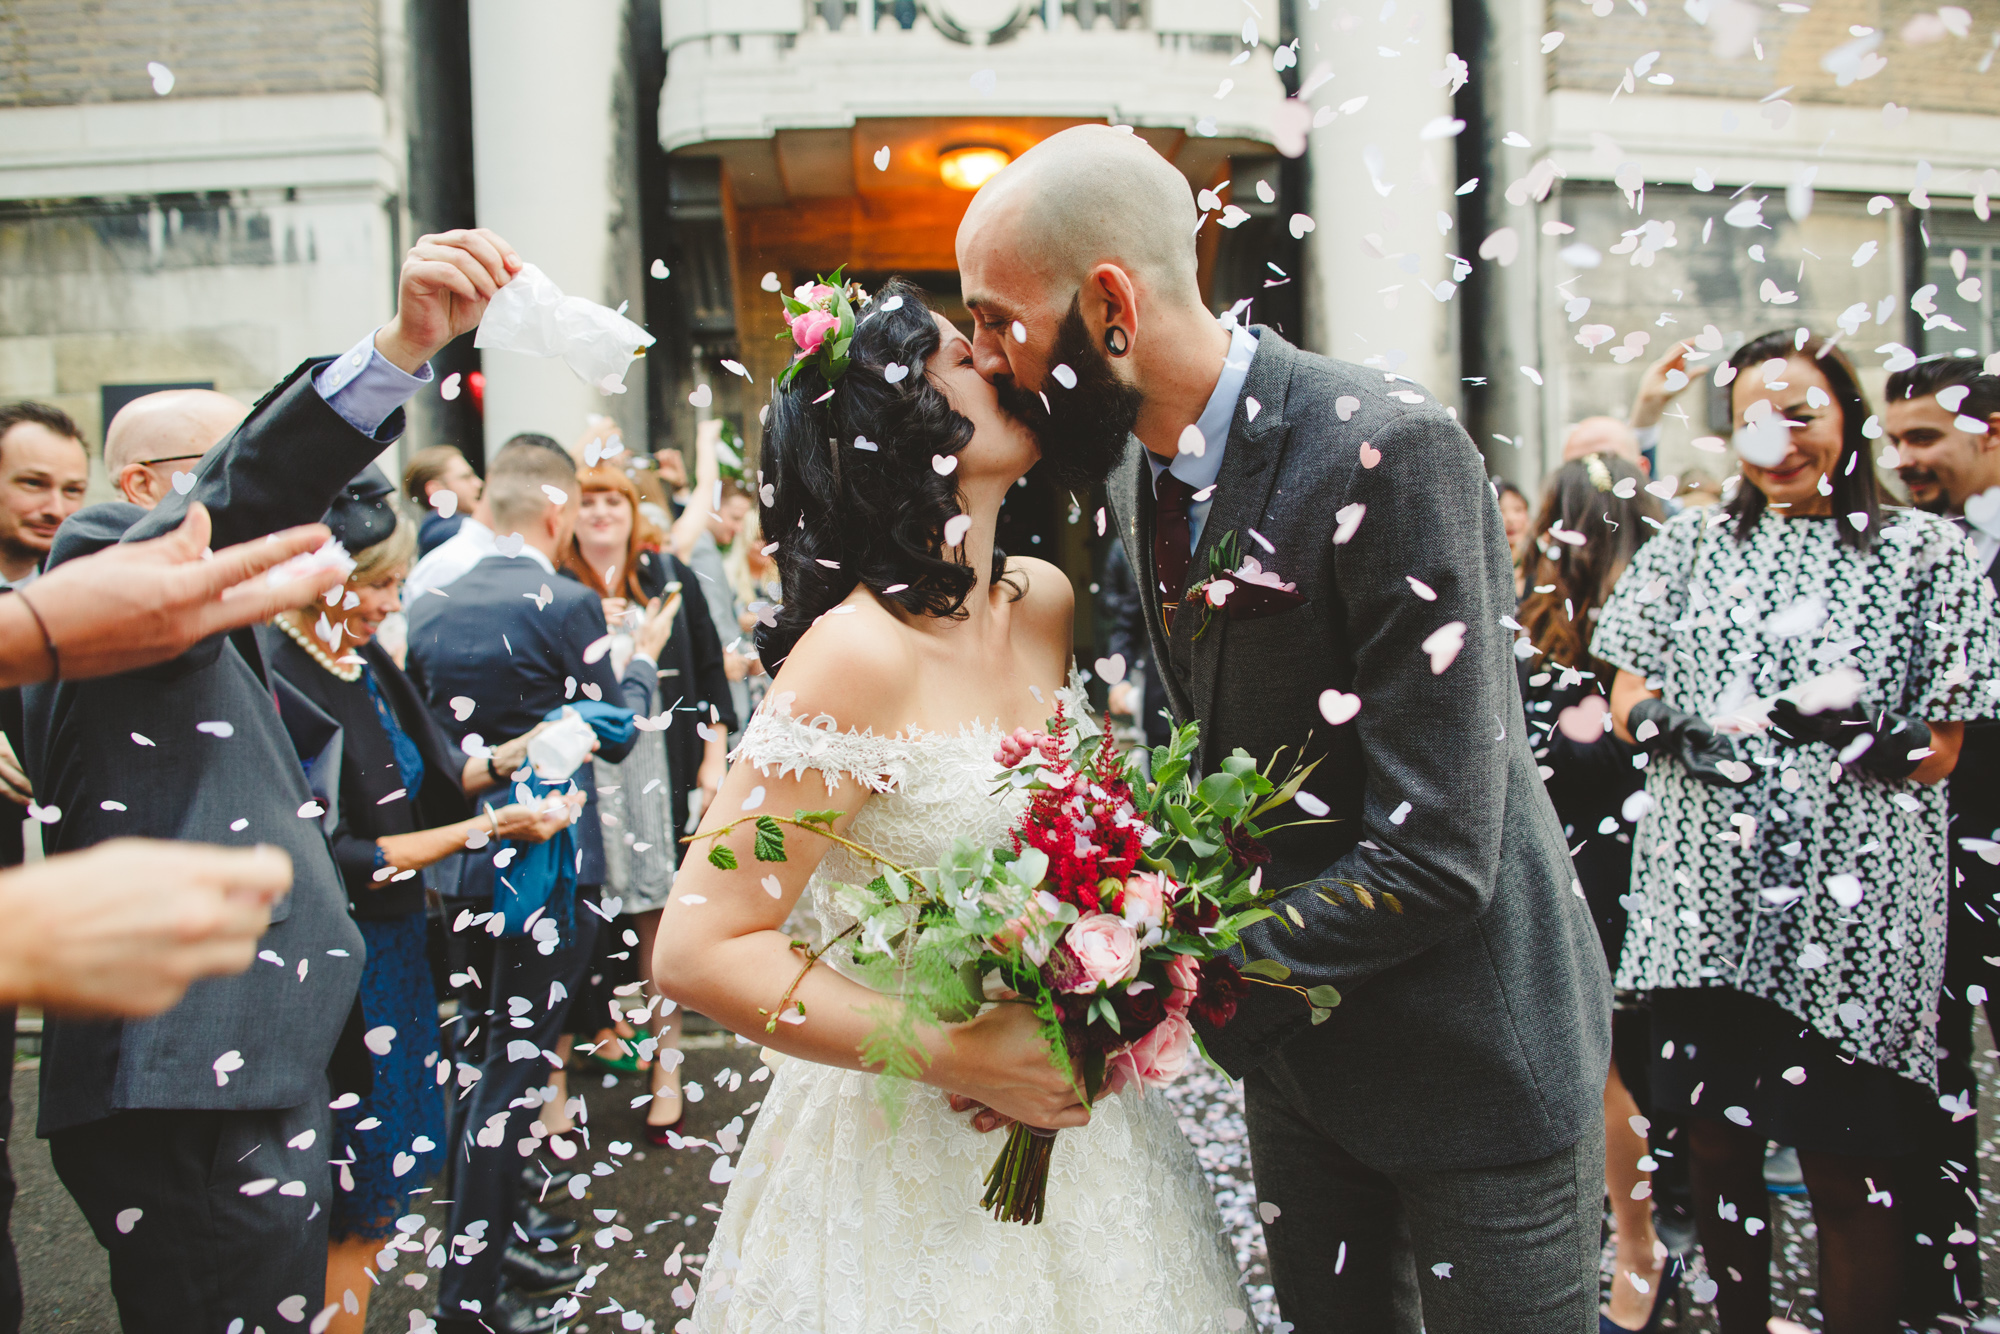 Wedding photograph of Bride in vintage dress and alternative groom  at Town Hall london wedding covered in confetti by Camera Hannah.